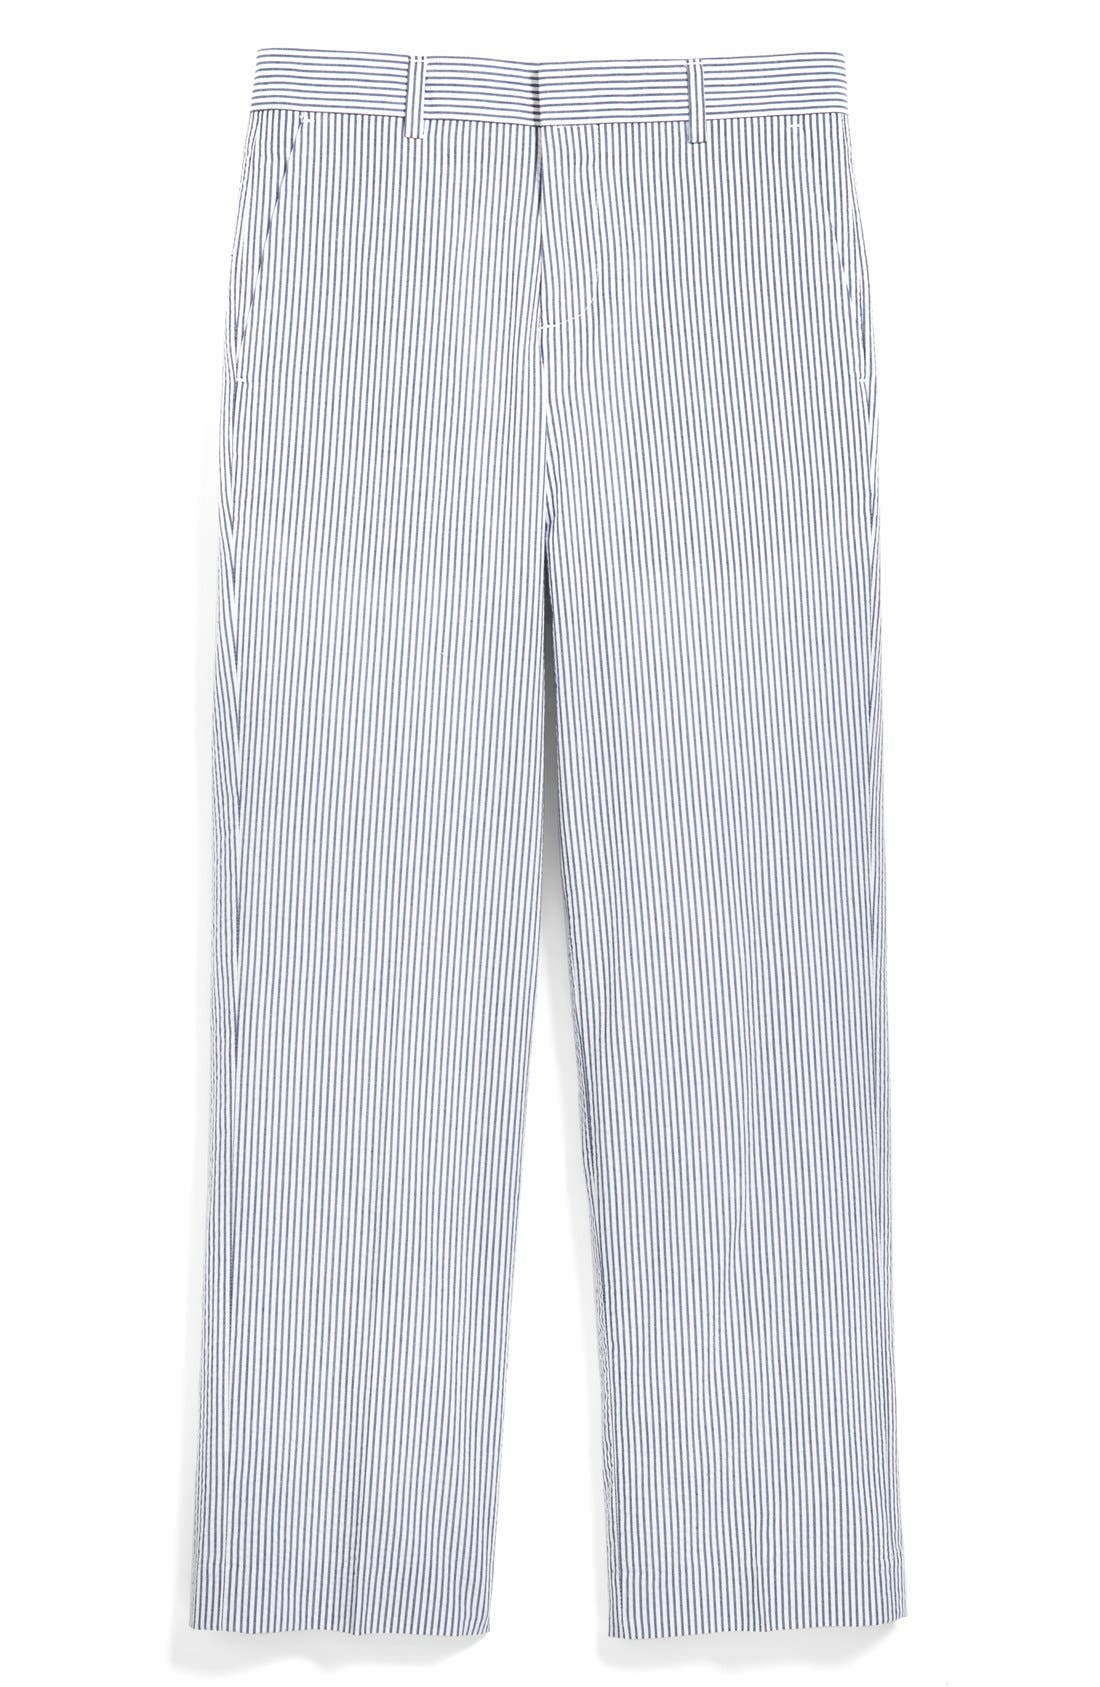 Main Image - Nordstrom 'Quentin' Seersucker Trousers (Toddler Boys, Little Boys & Big Boys)